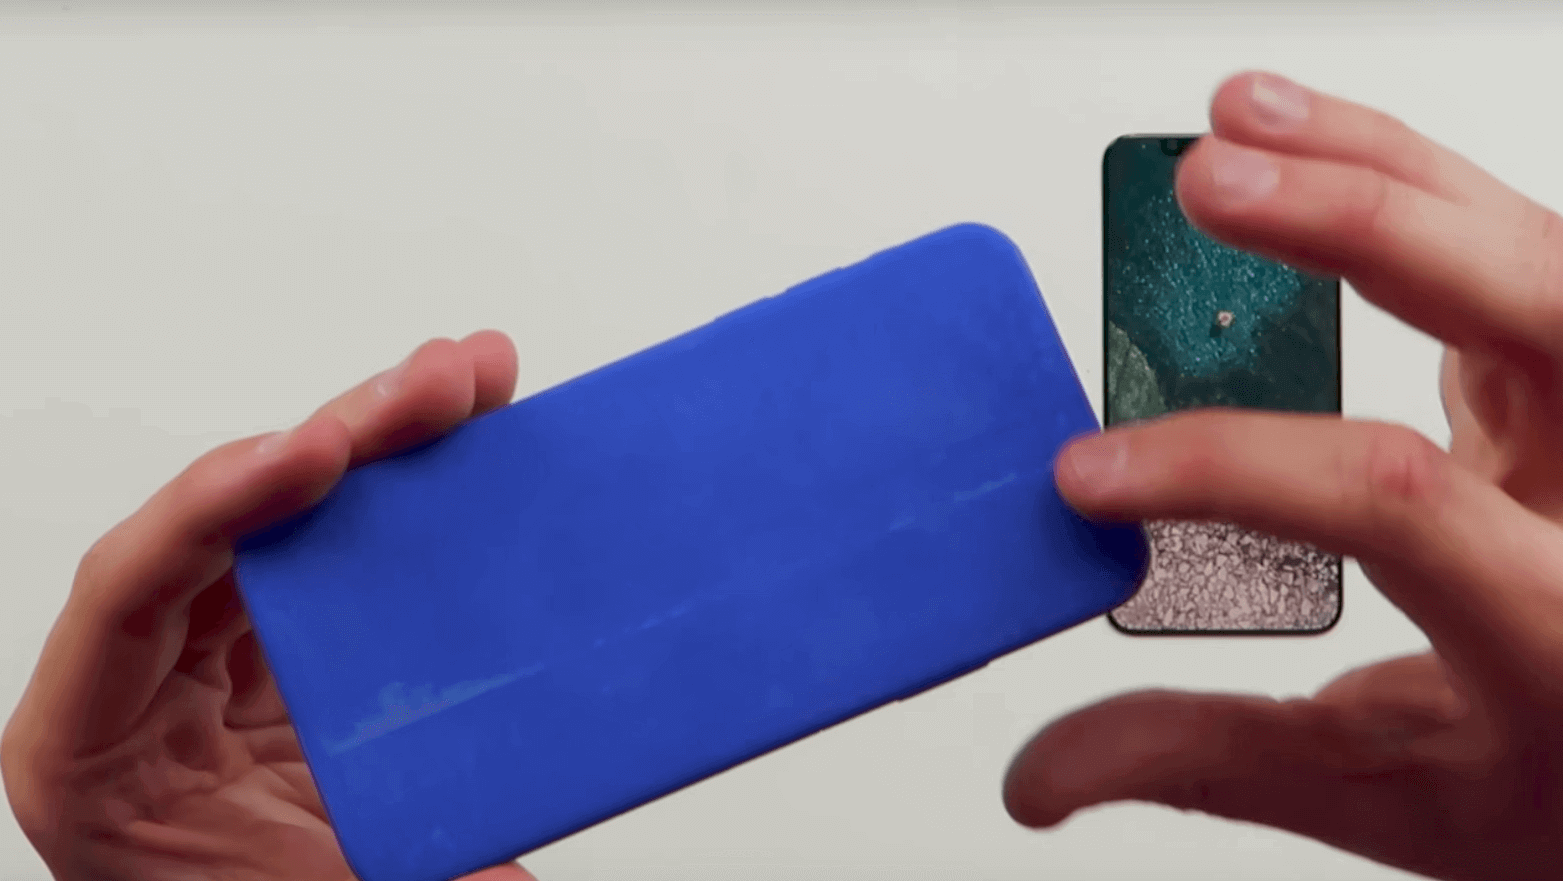 3D Printed iPhone 8 Leak Suggests Major Changes From Apple | All3DP